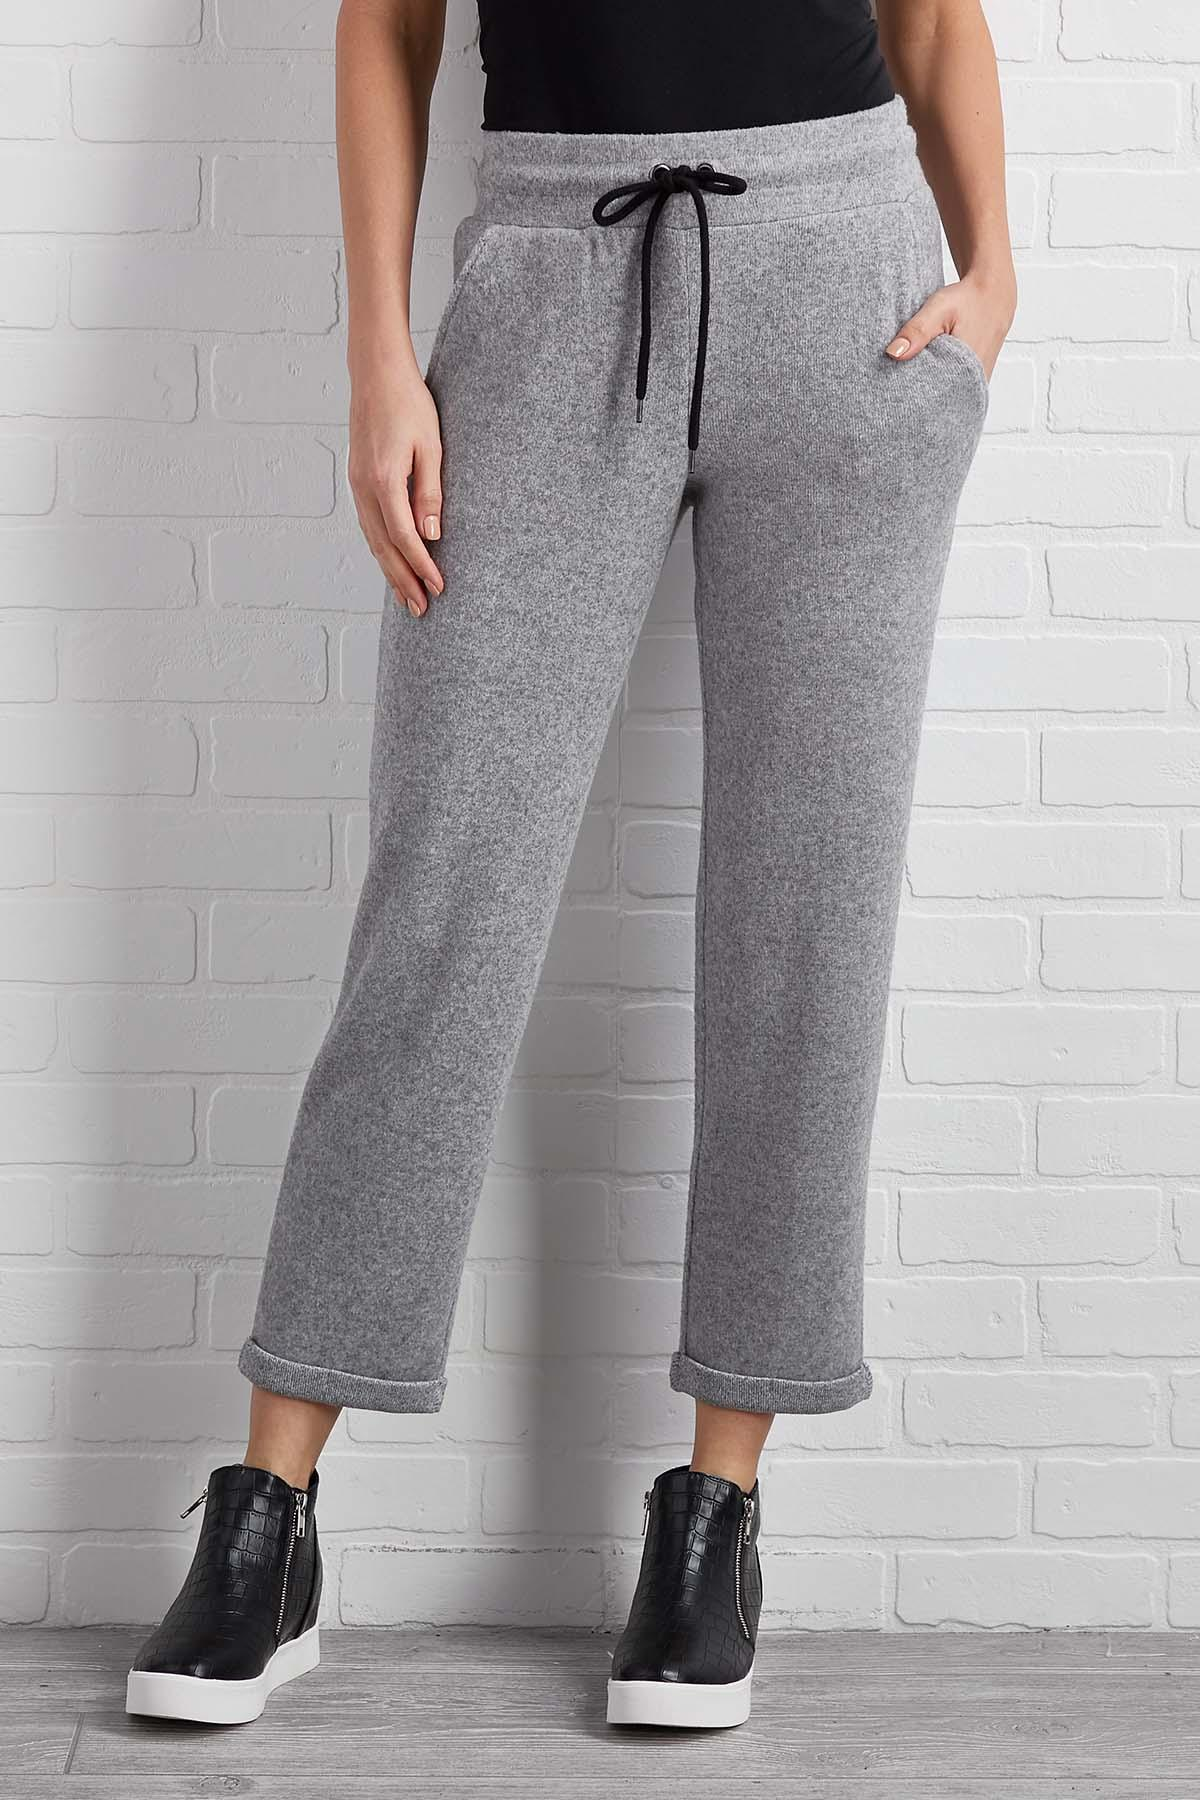 Saturday Morning Lounge Pants